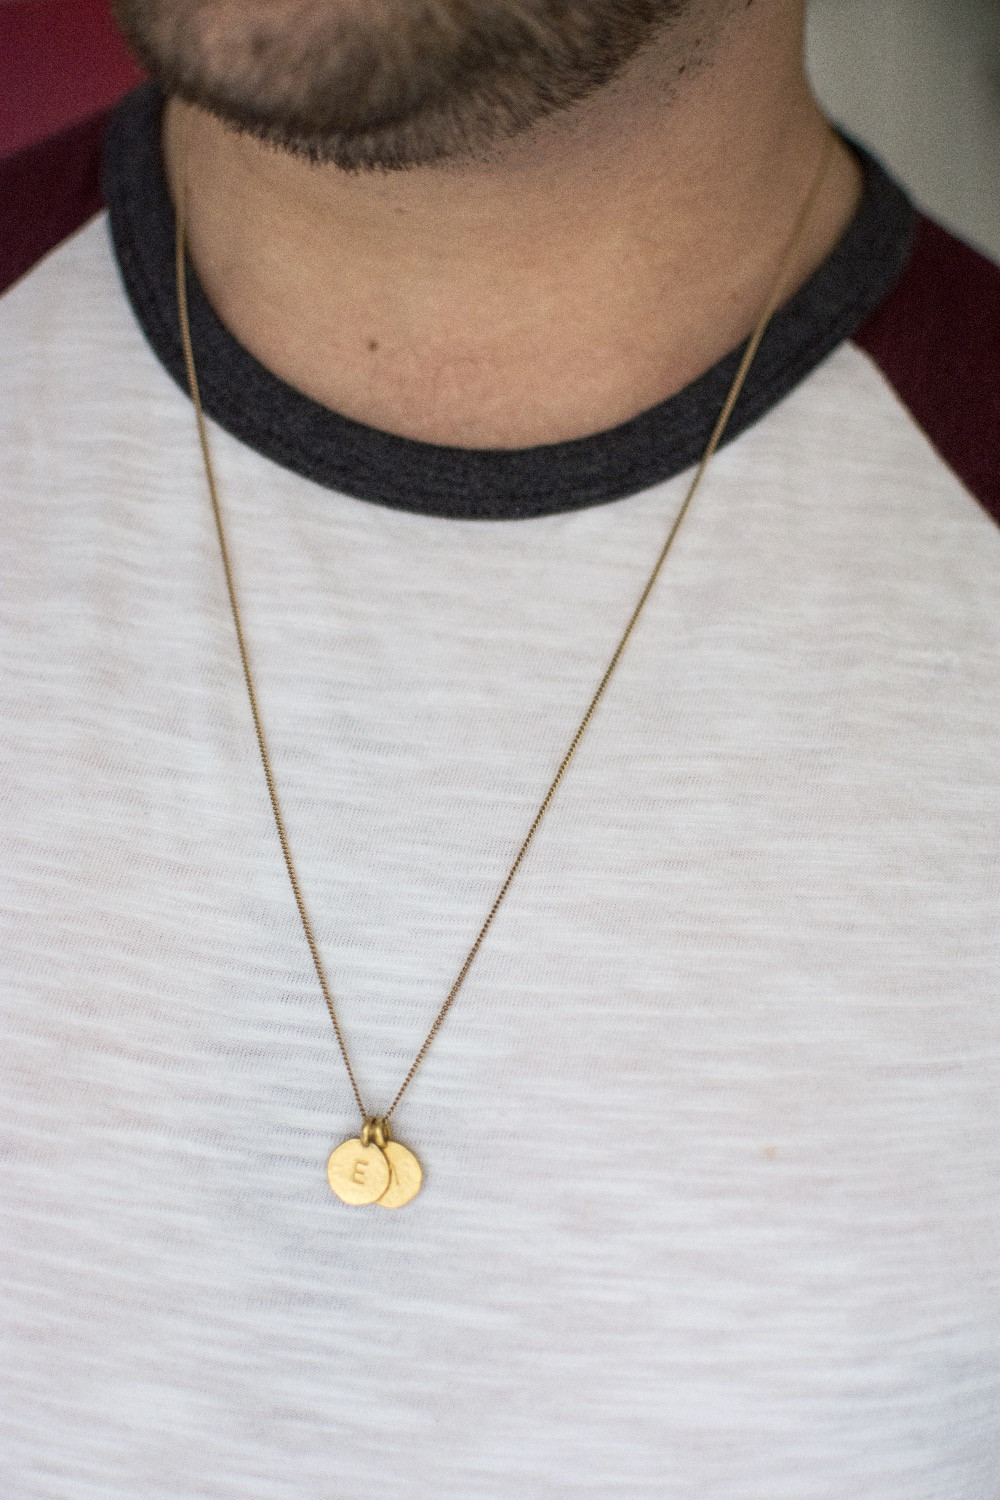 Kyle Chan Love Initials Necklace